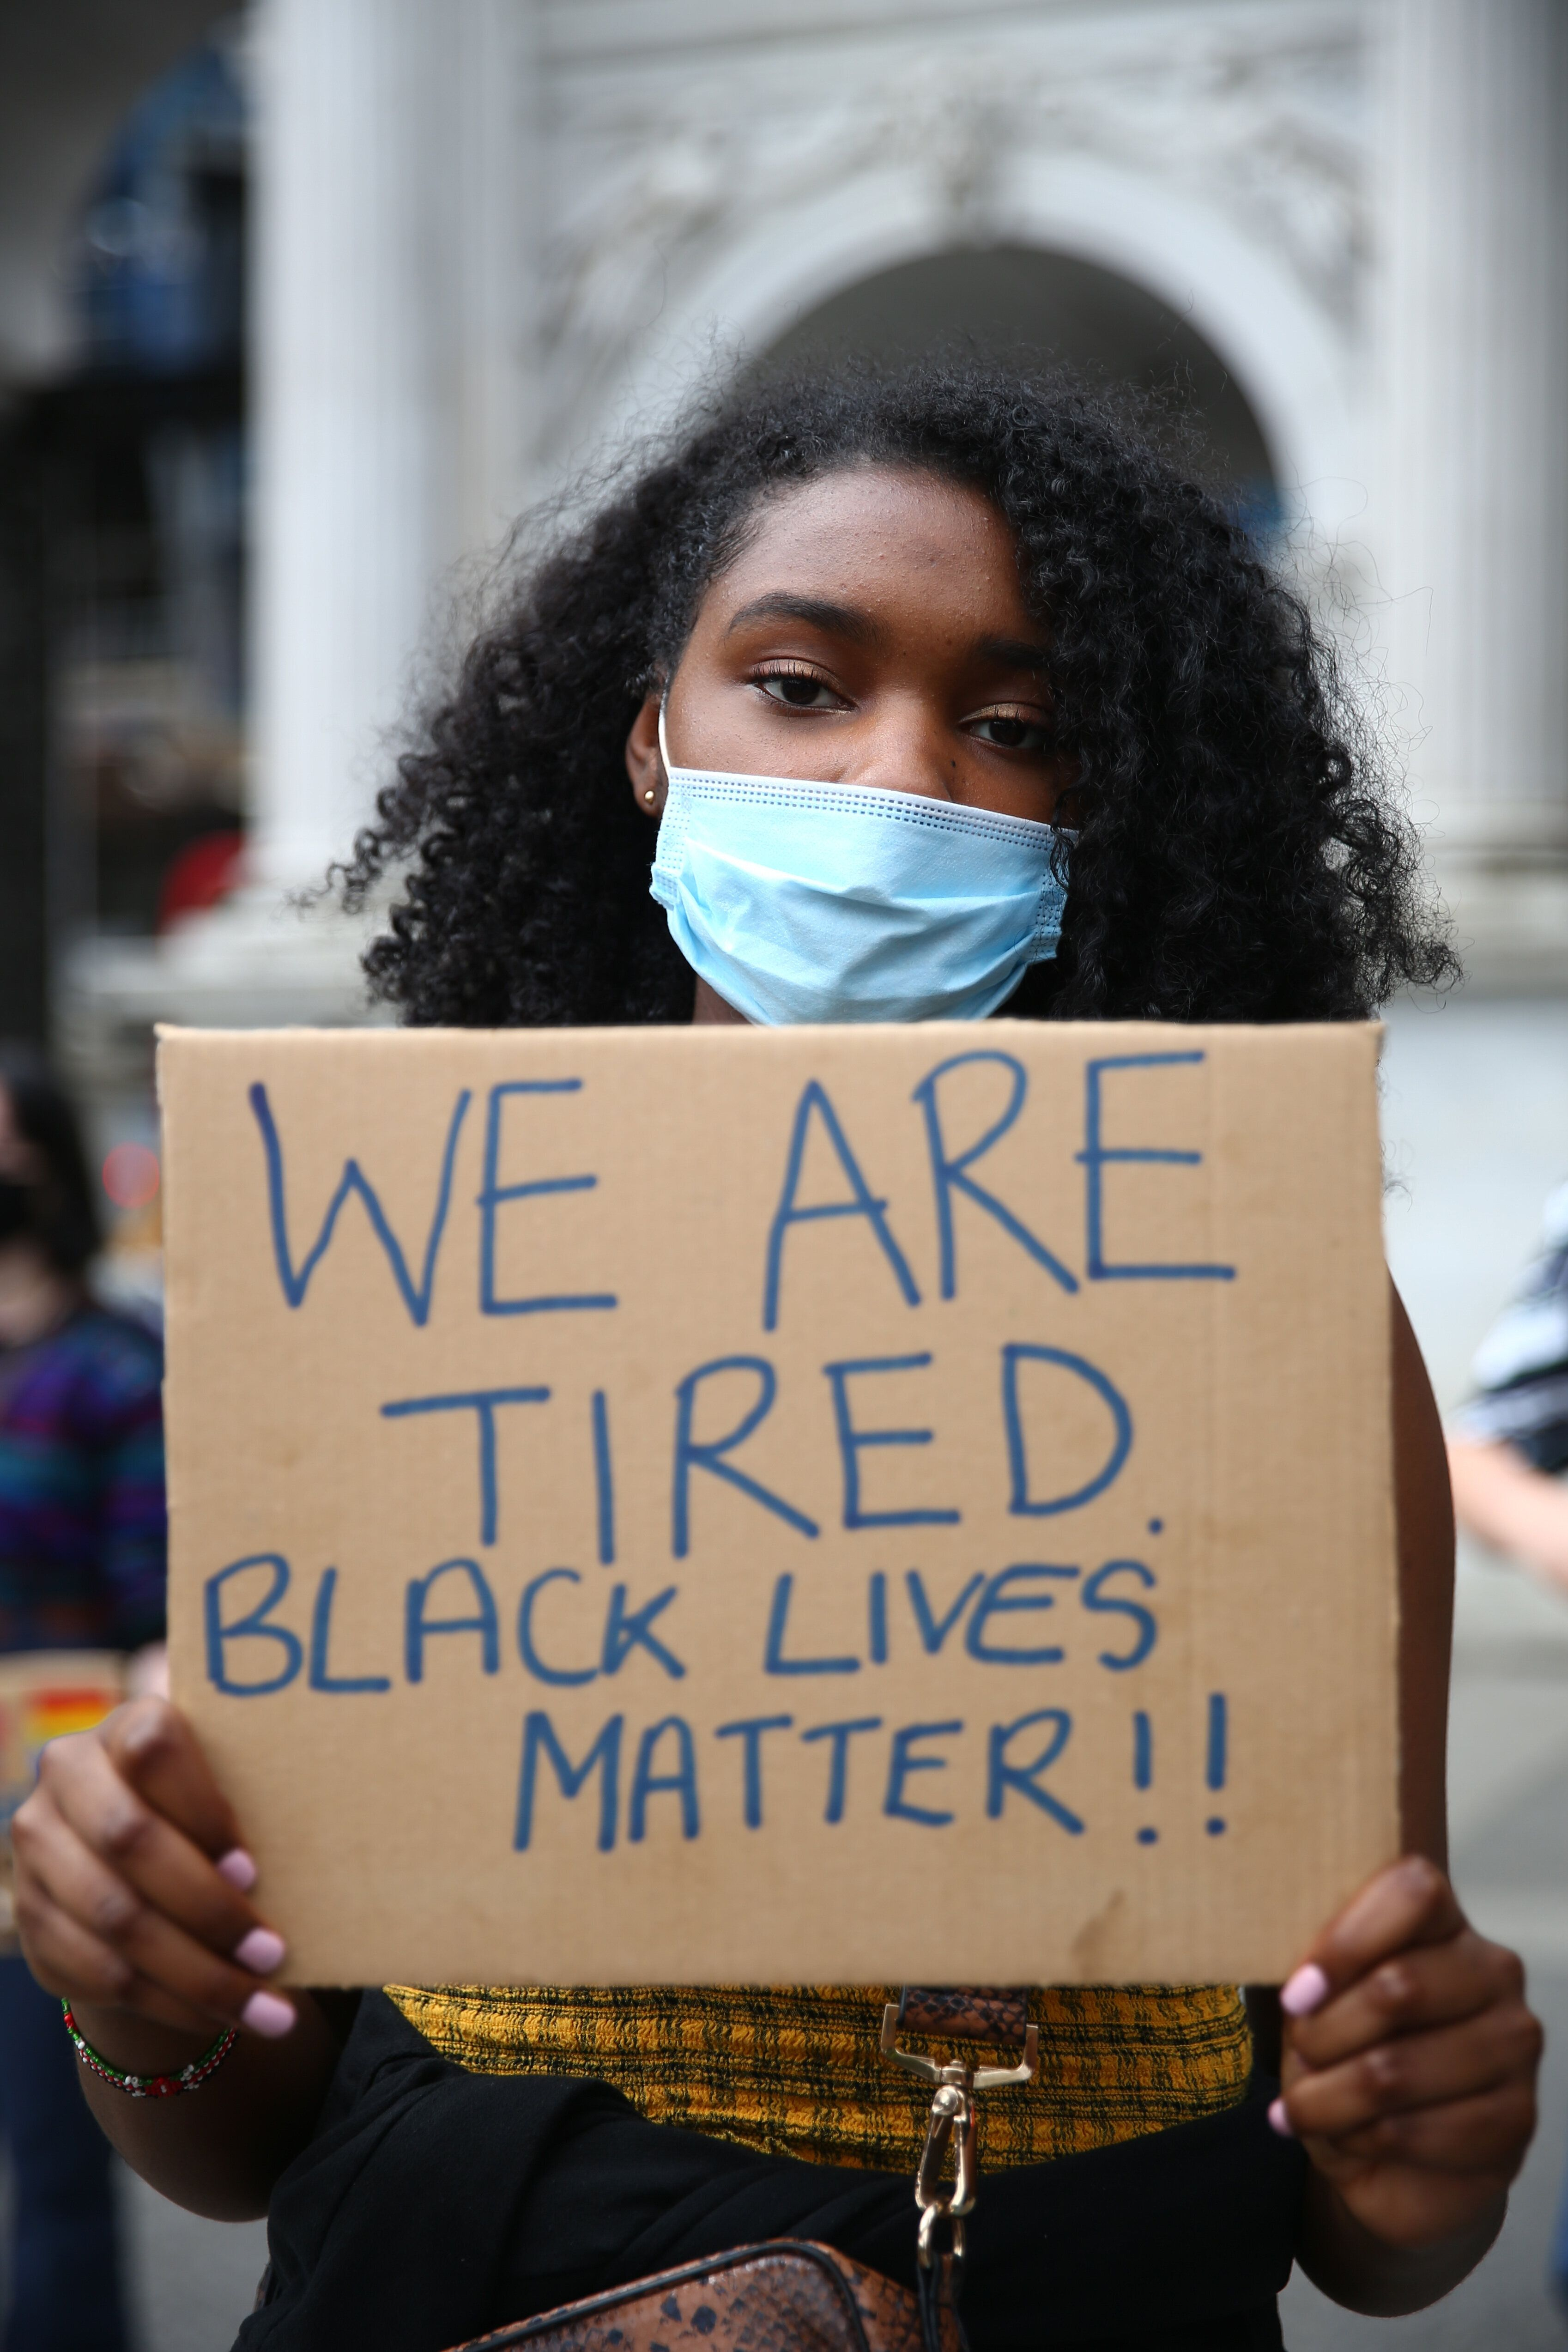 Protesters gather for Black Lives Matter protests in July 2020 in response to the killing of George Floyd.